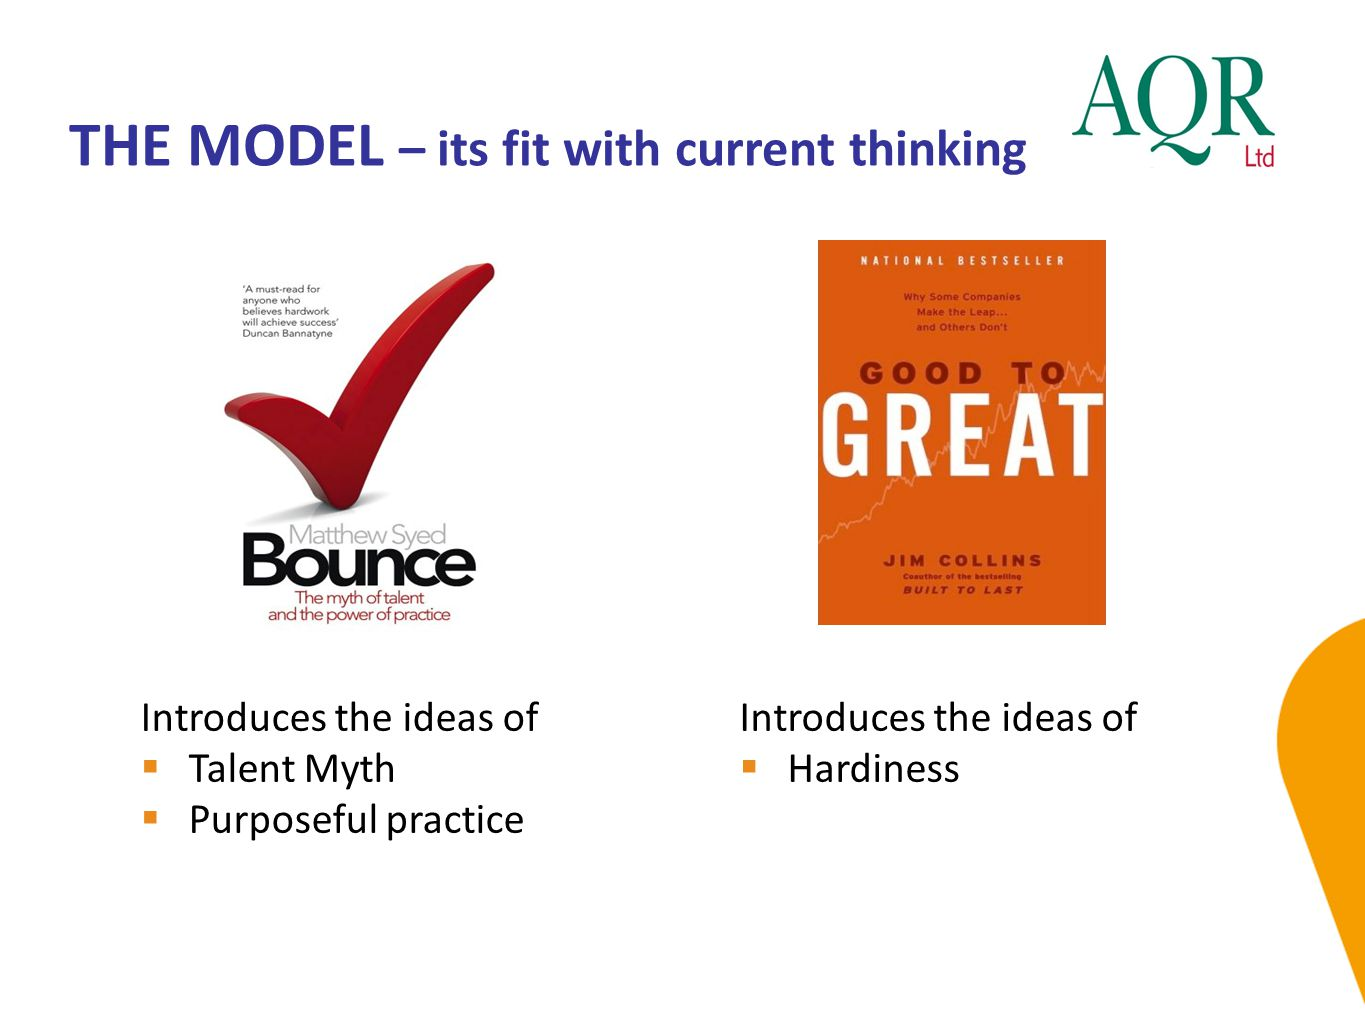 THE MODEL – its fit with current thinking